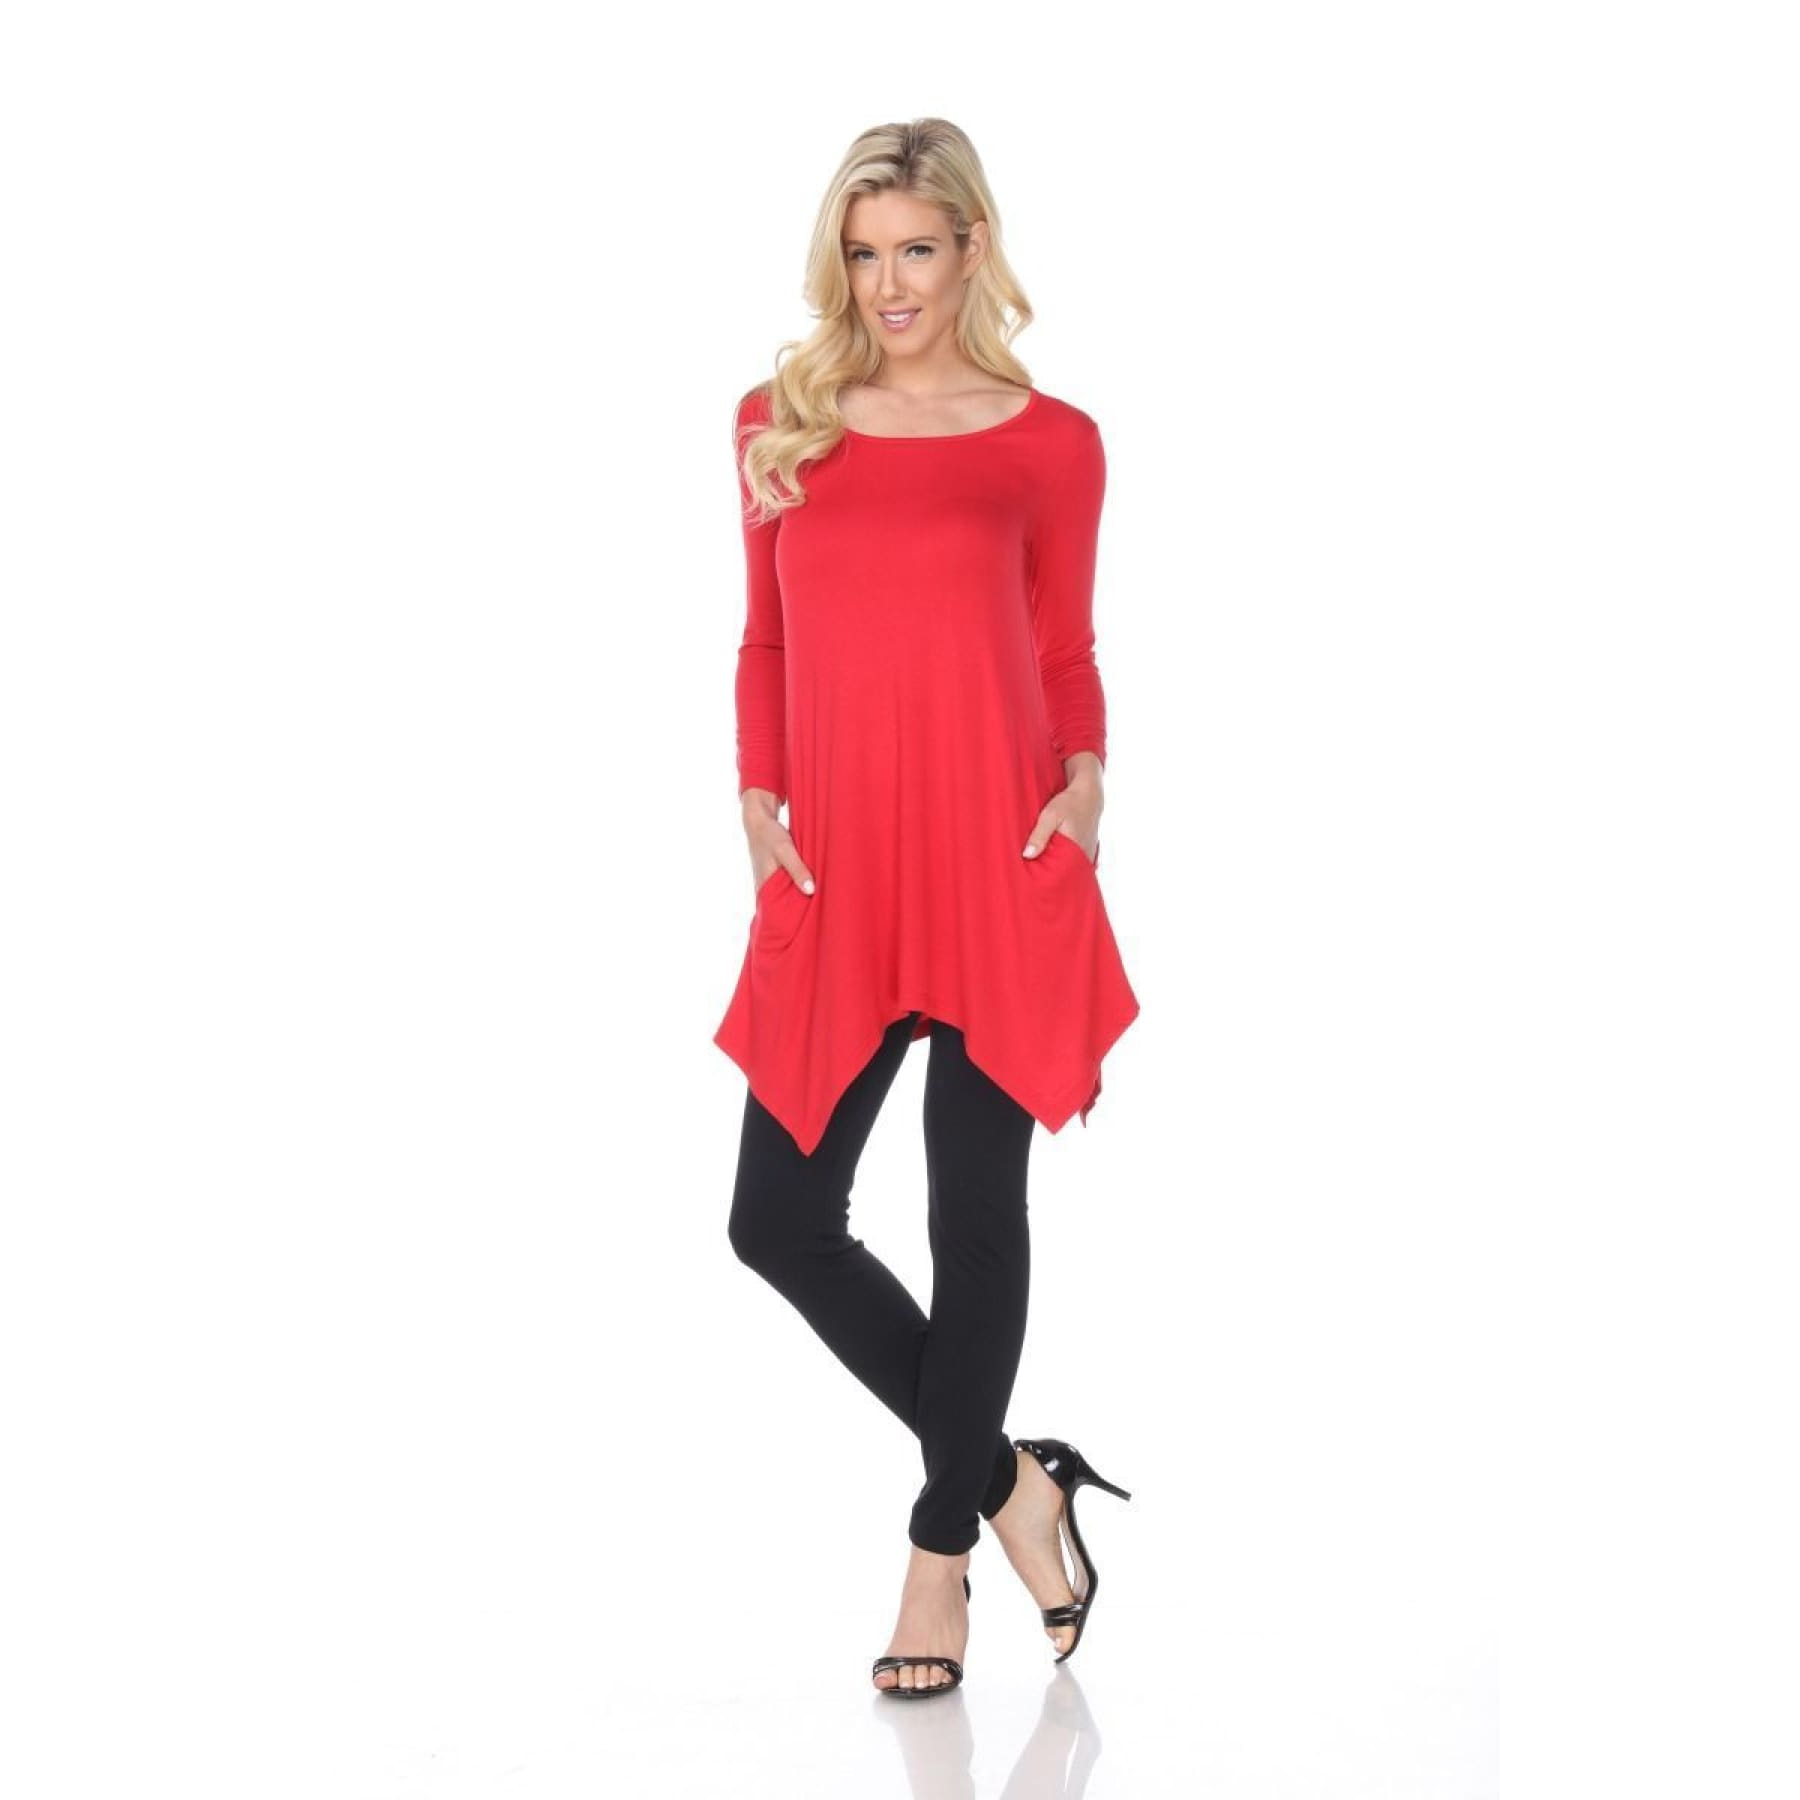 Side Pocket 3/4 Sleeve Solid Tunic Top ~4 colors - S / Red